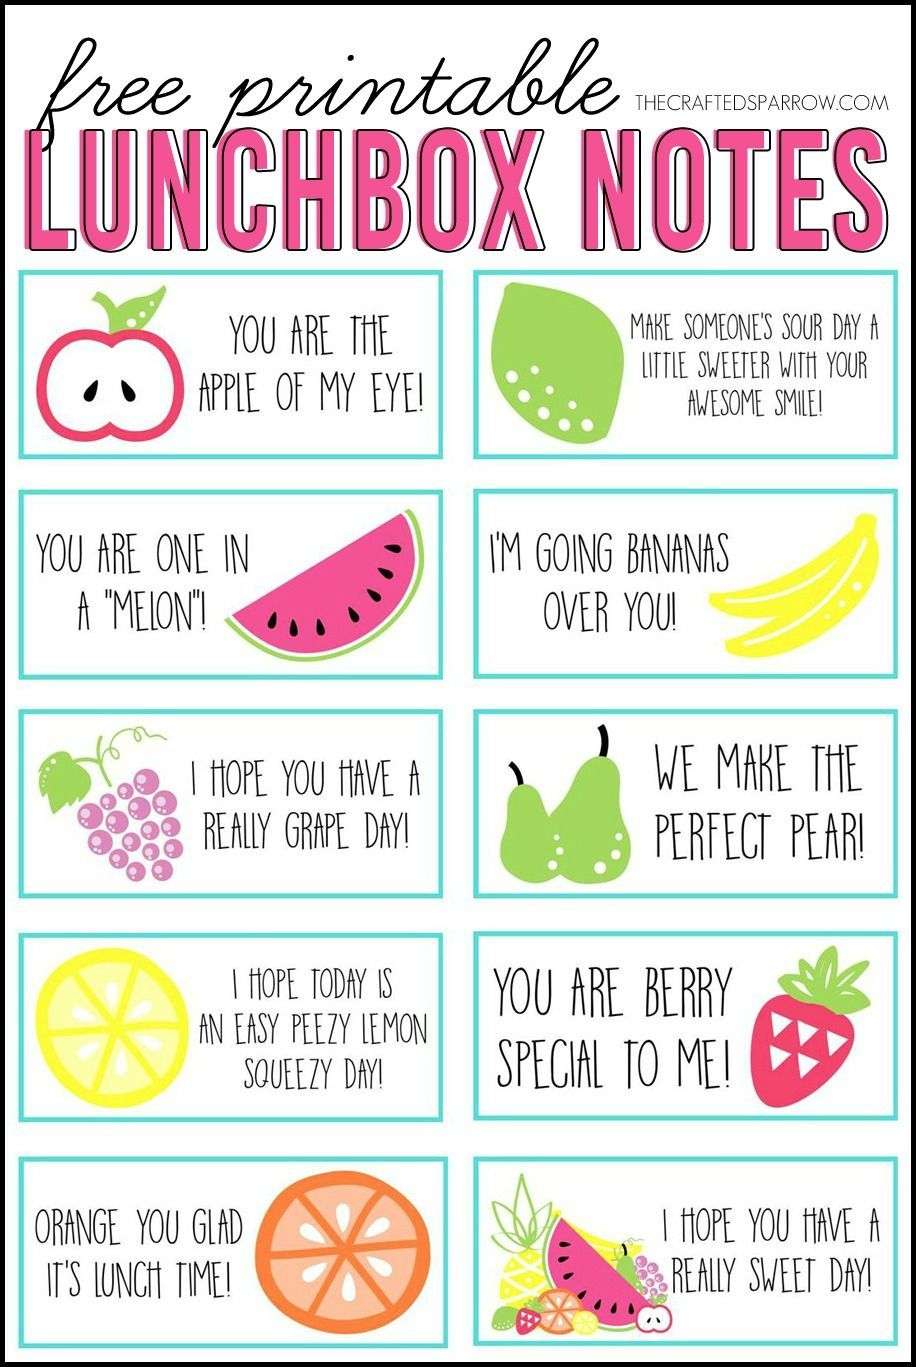 Free Printable Lunchbox Notes, 3 Full Pages To Print - Free Printable Lunchbox Notes